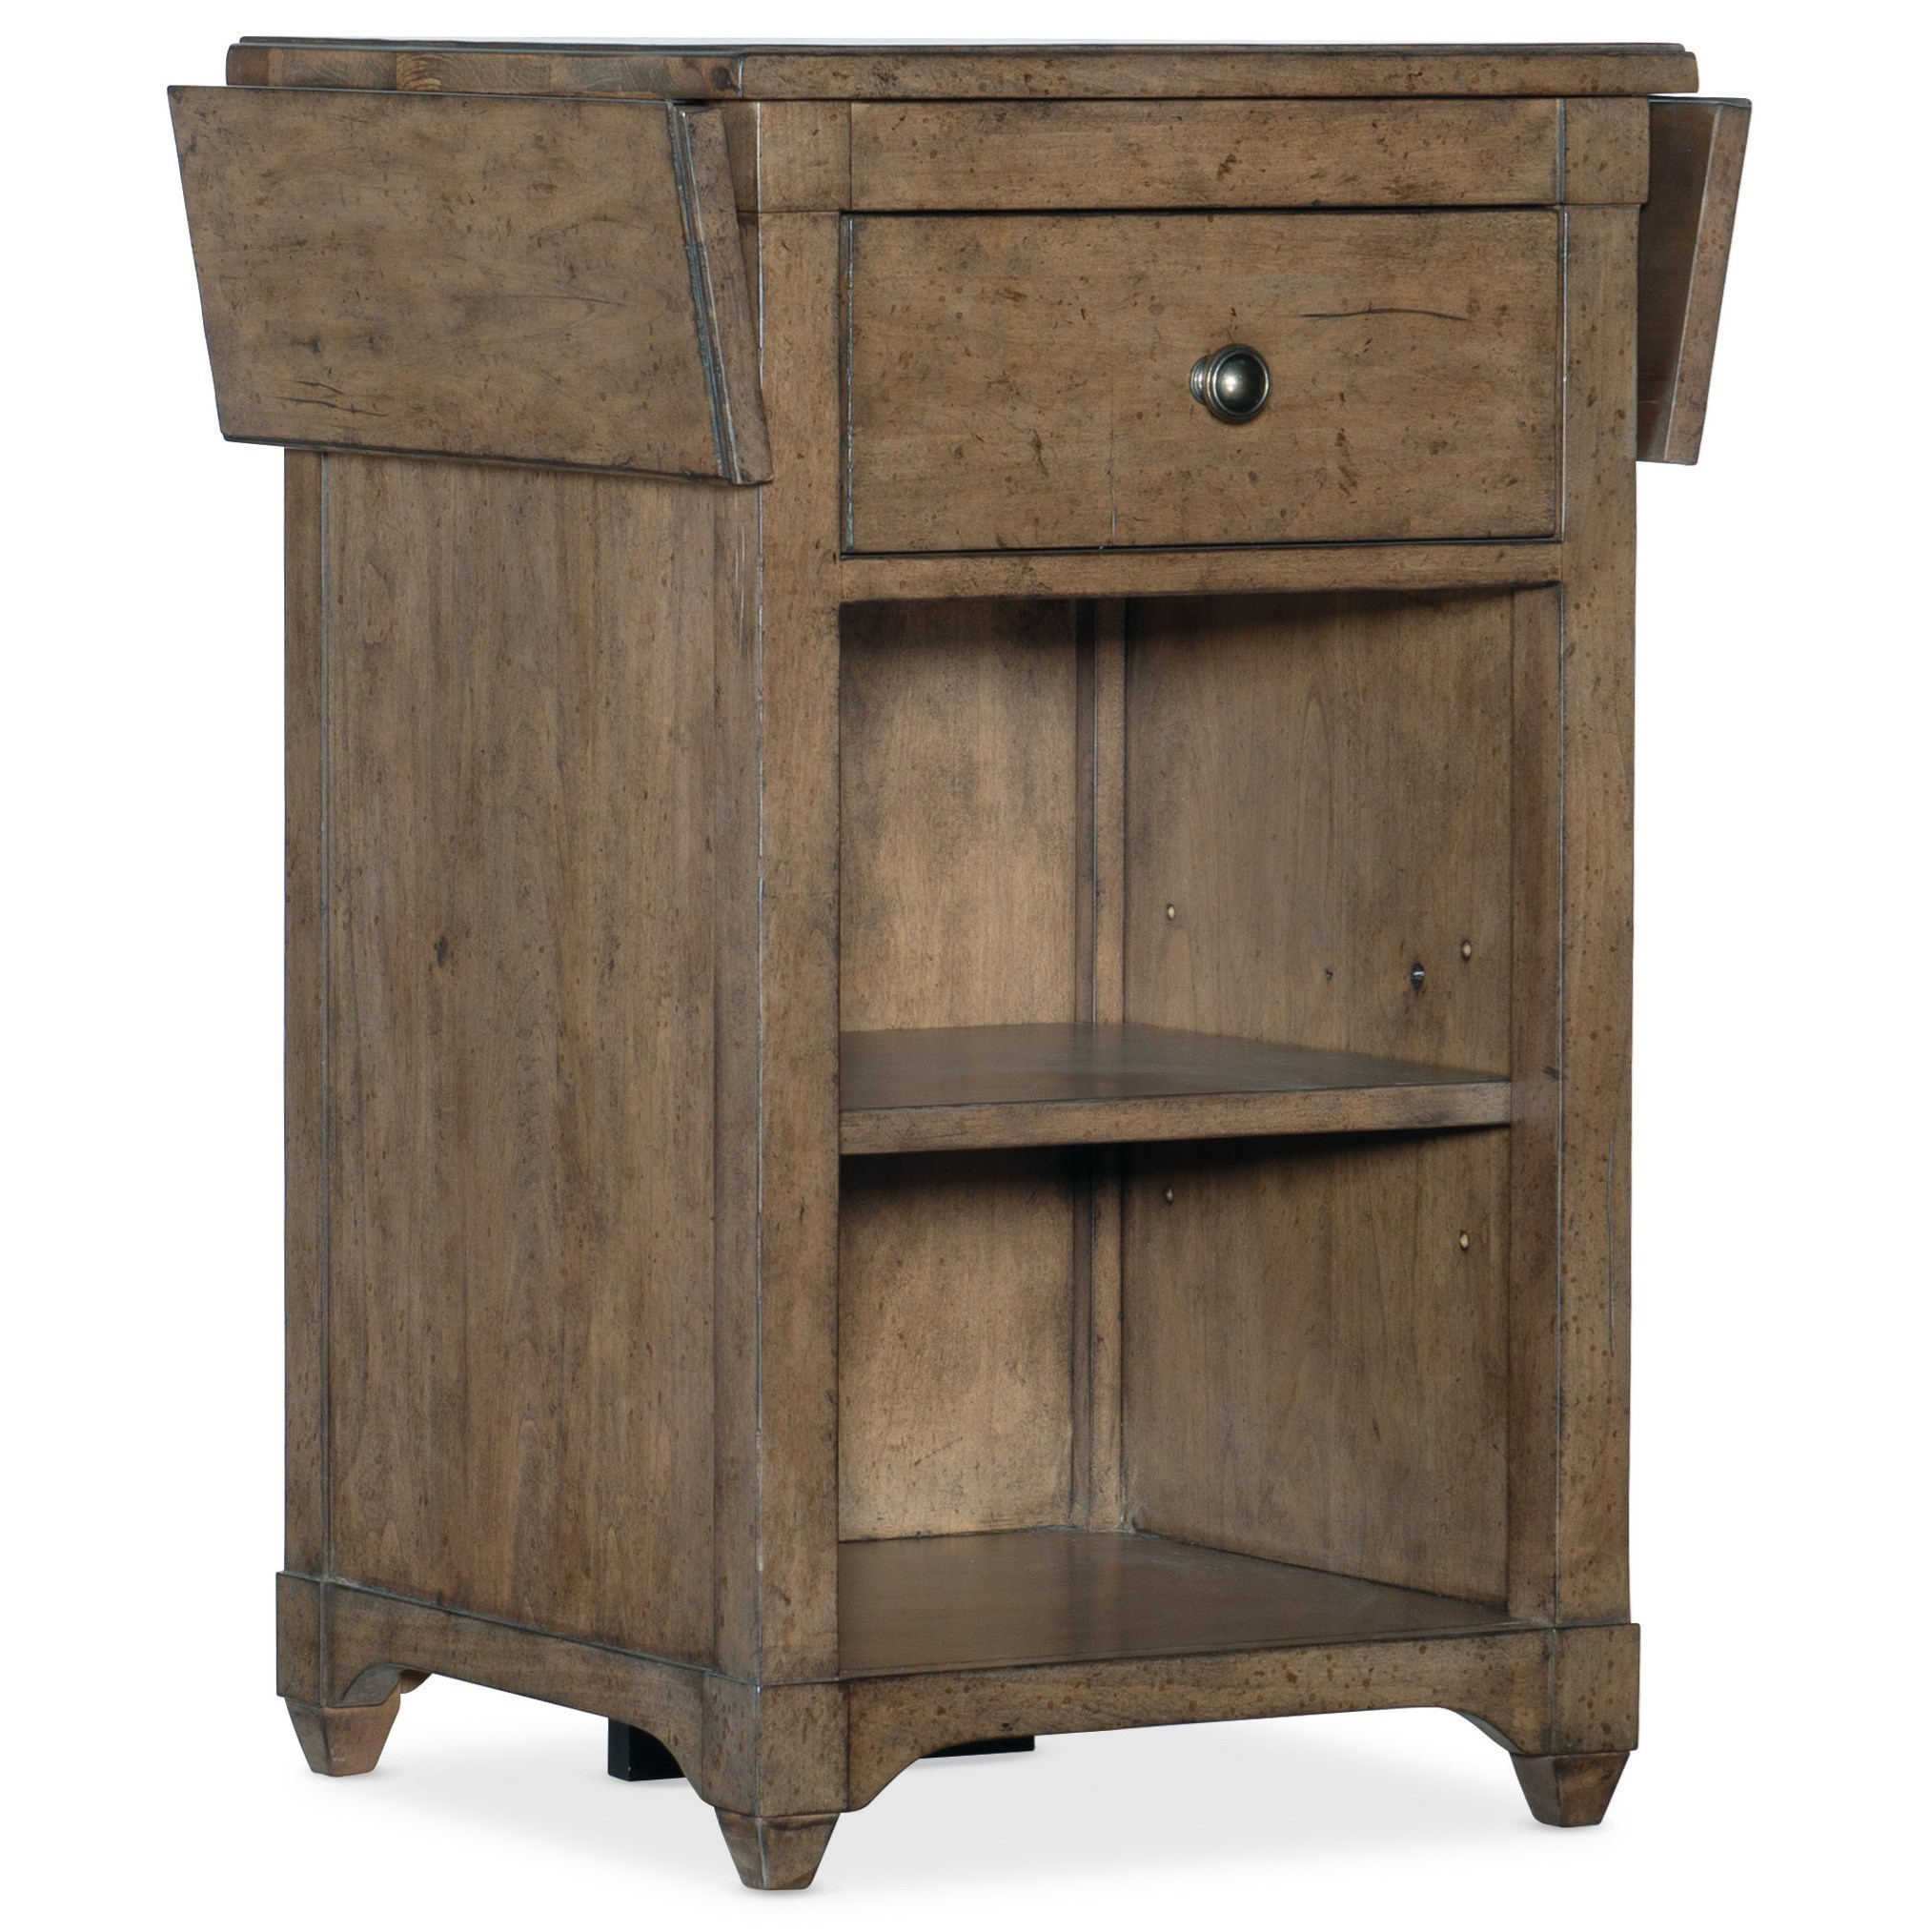 Farmhouse Solid Wood Telephone Table with 1 Drawer and Drop Leaves